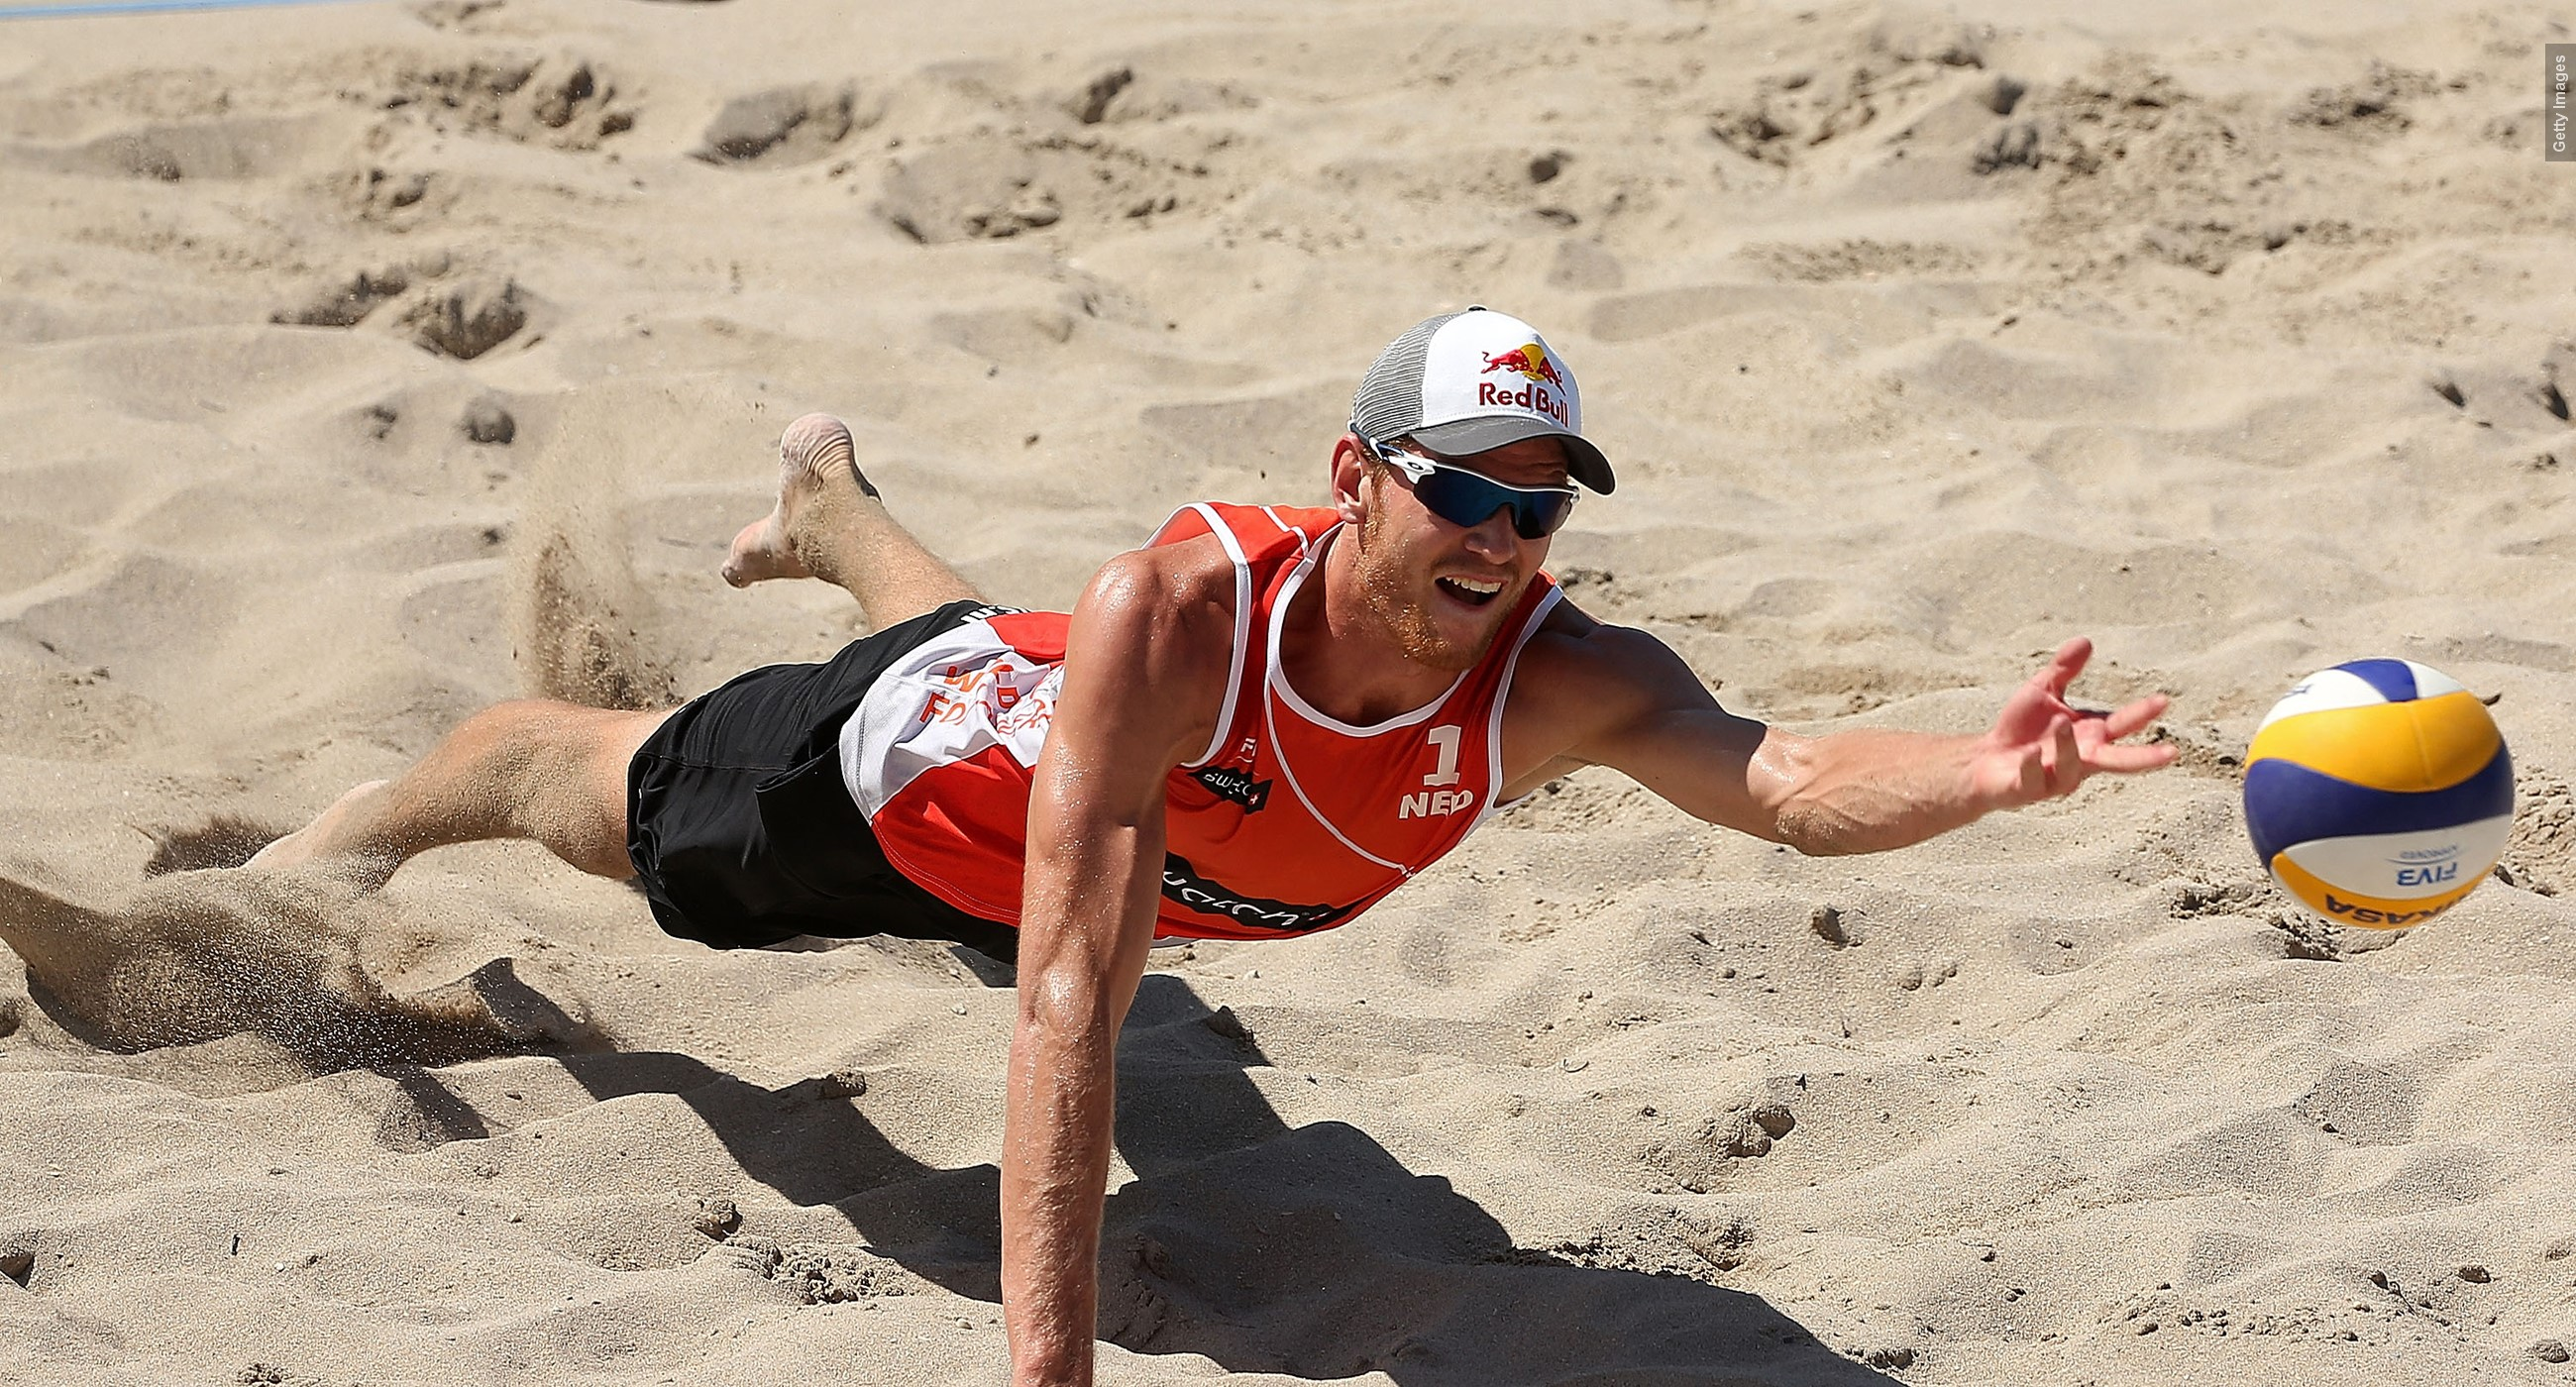 World Tour beachvolleybal 4*, Itapema